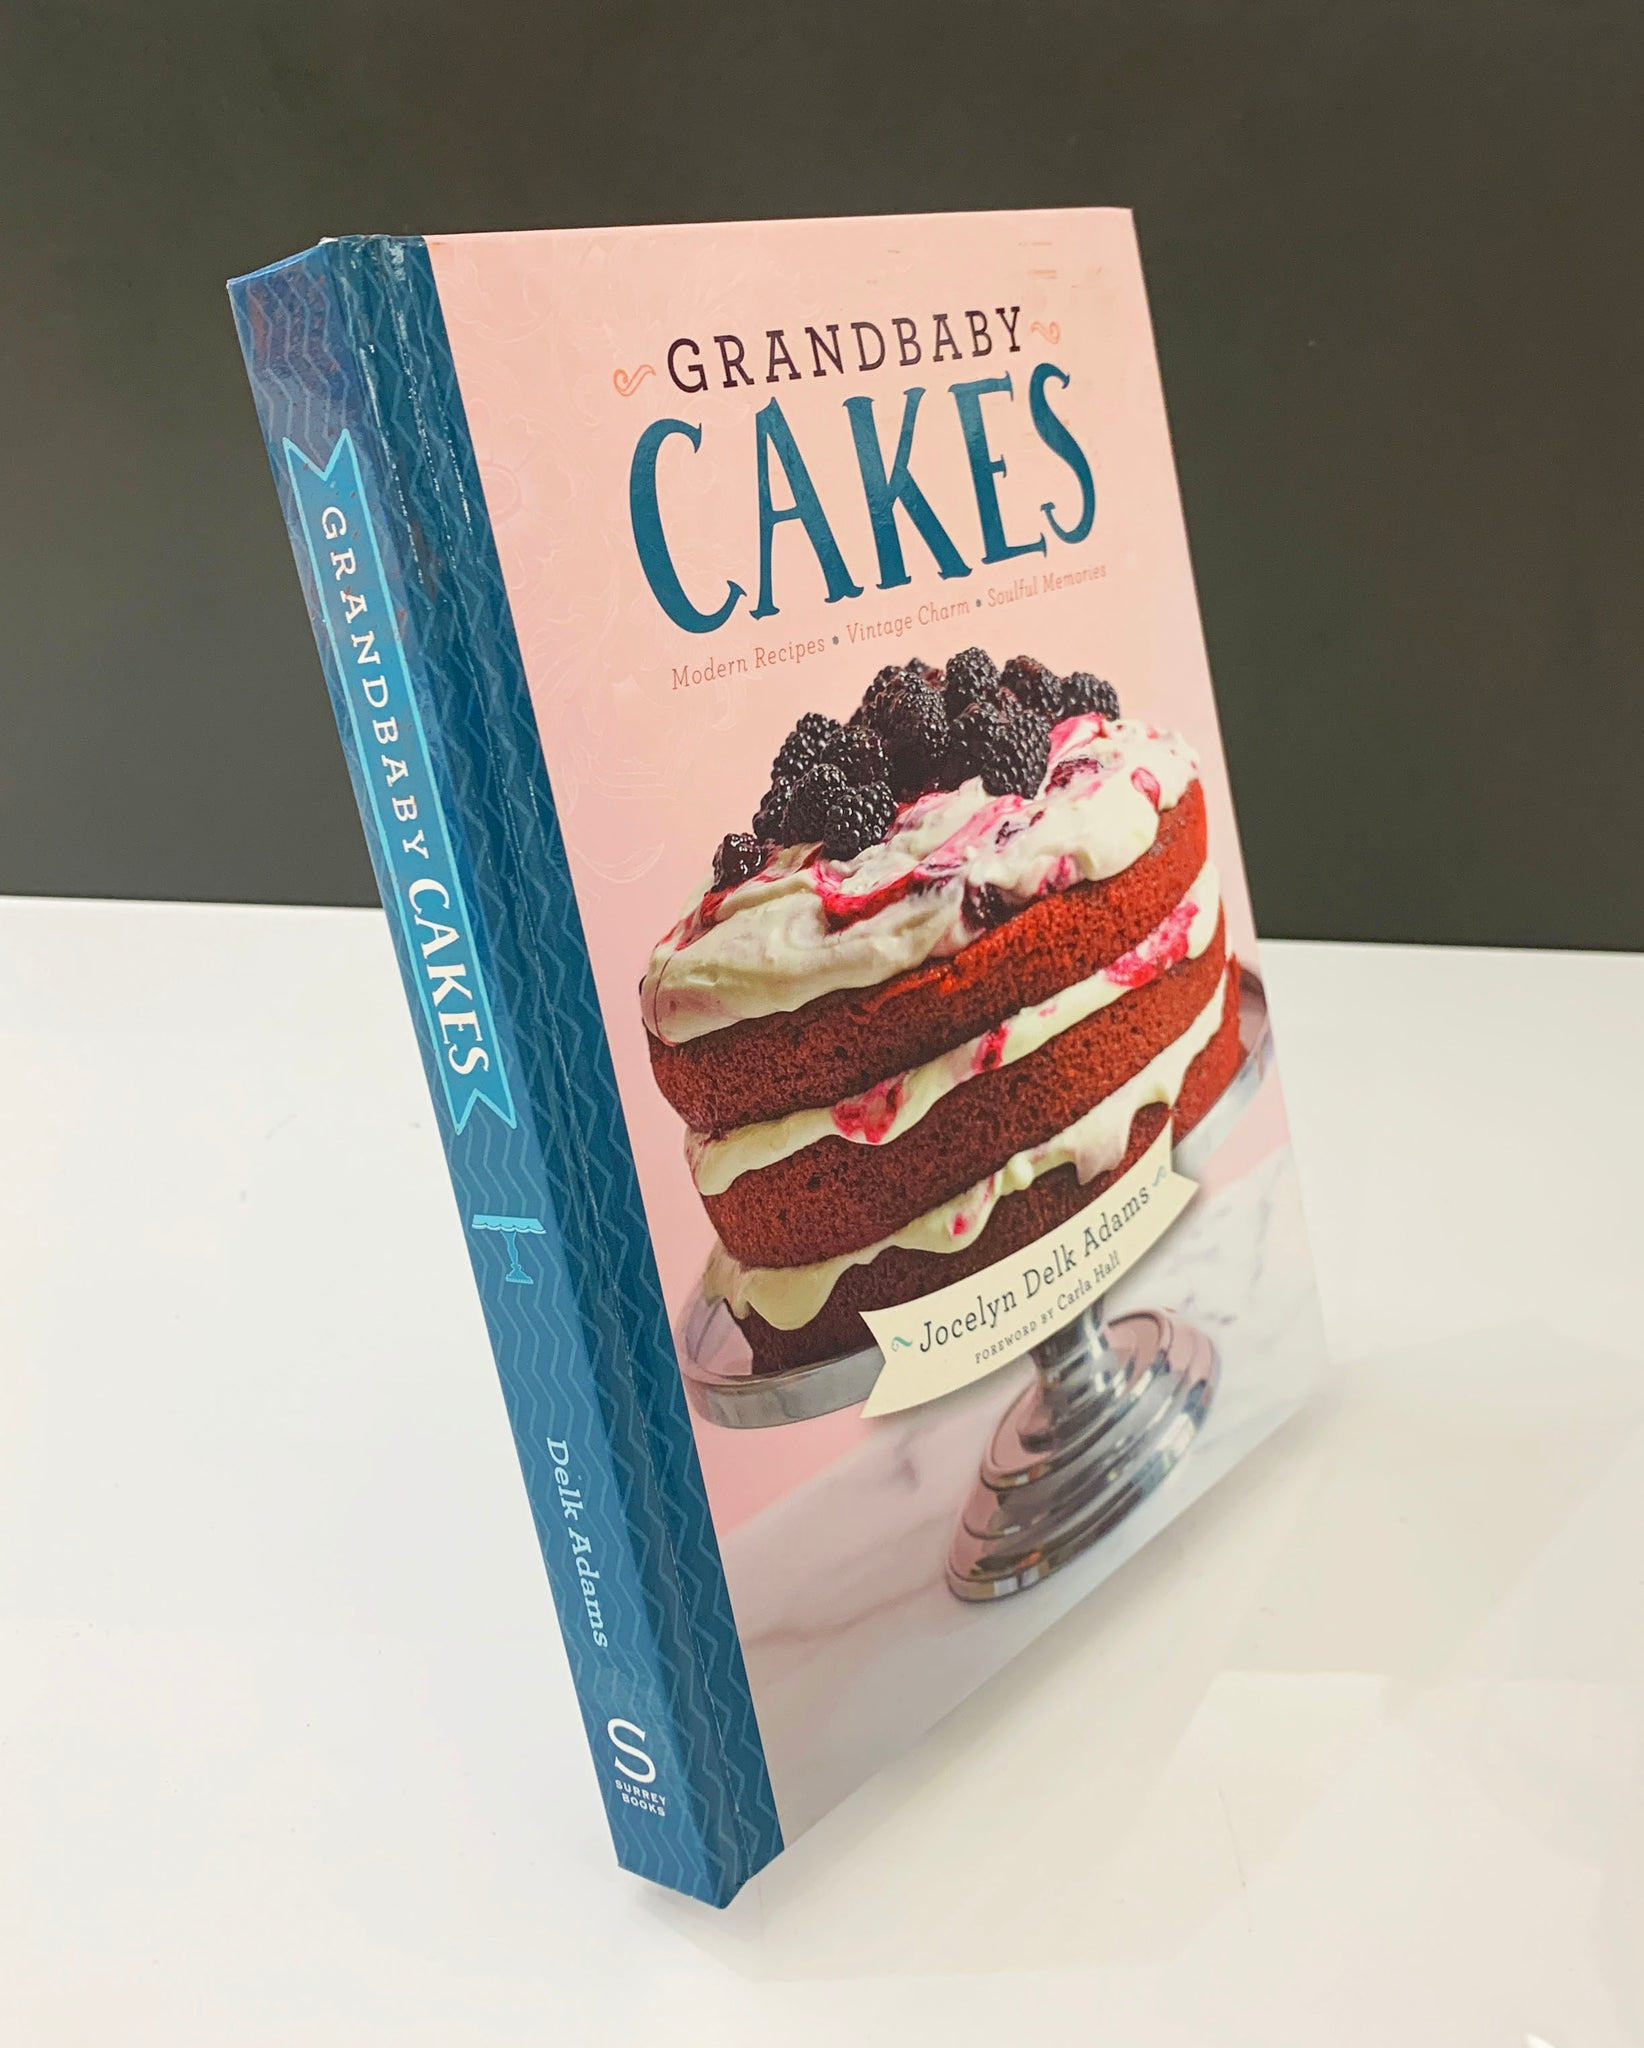 Grandbaby Cakes: Modern Recipes, Vintage Charm, Soulful Memories